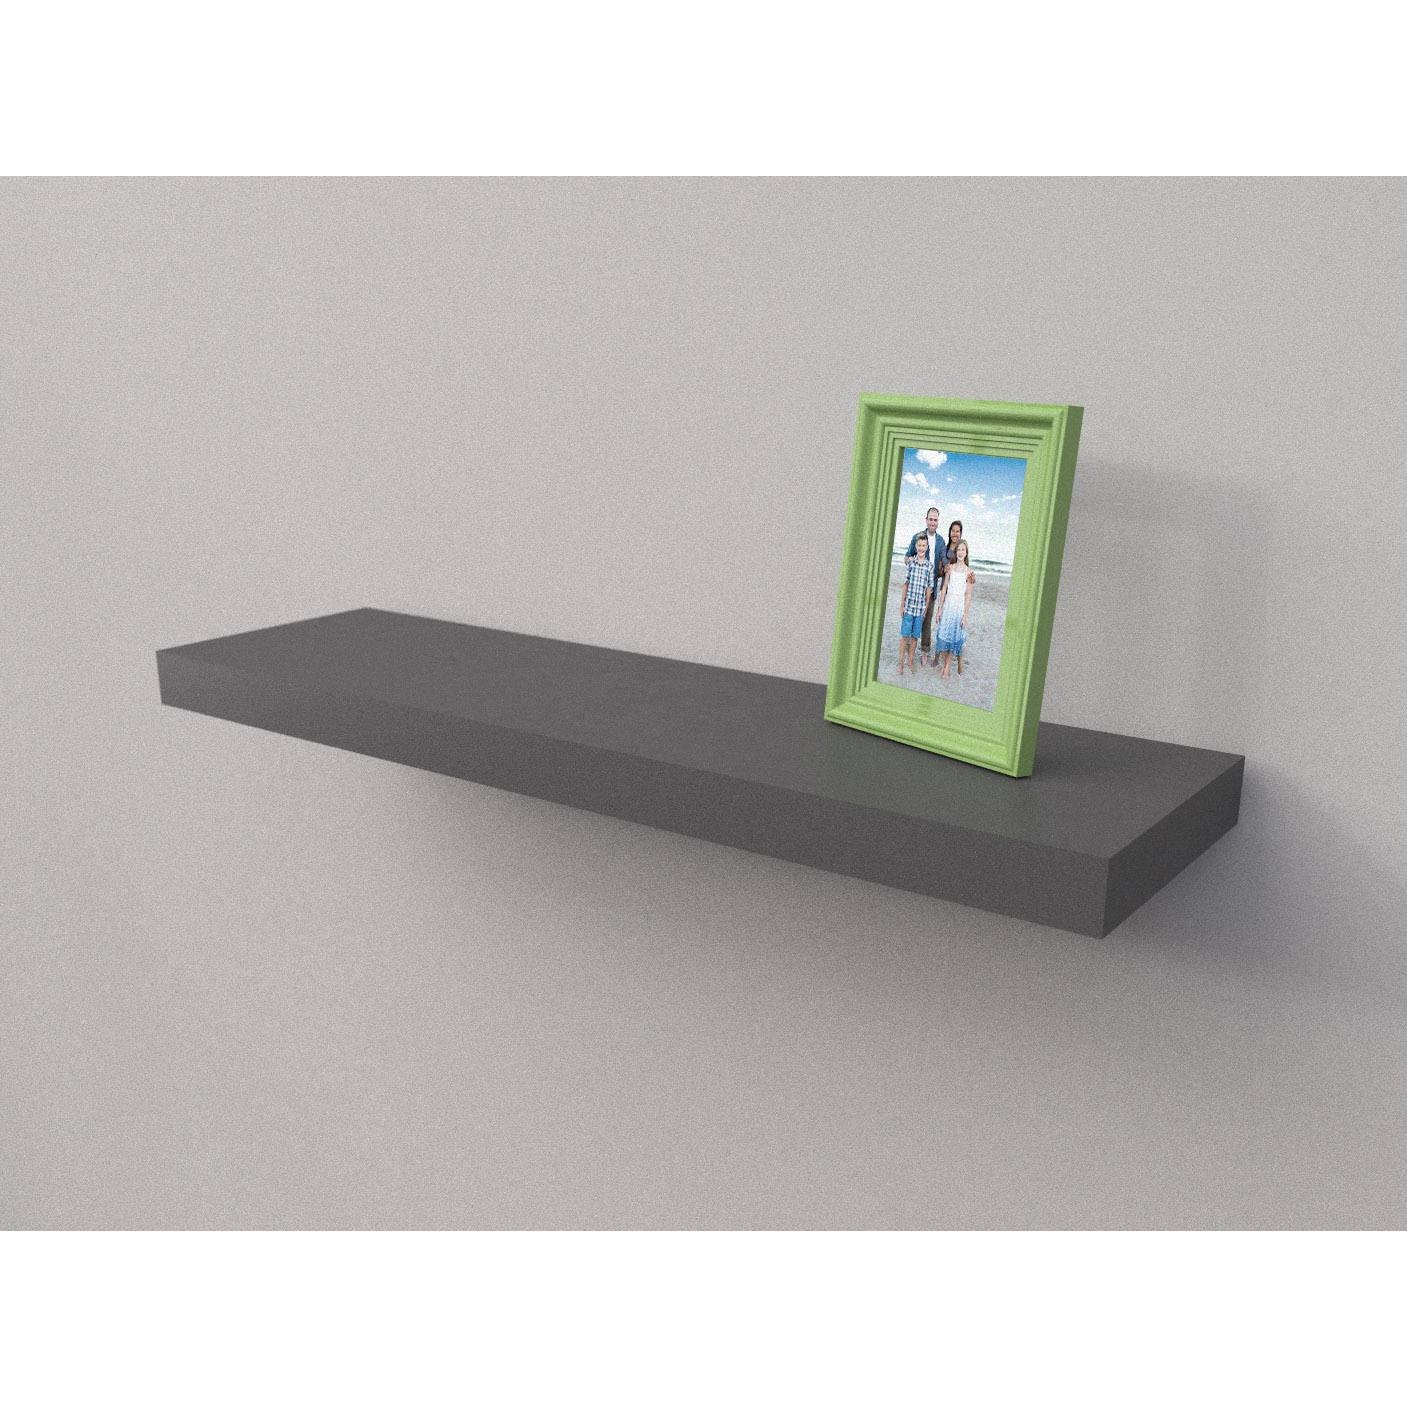 stone grey floating shelf part mastershelf shelves wall art set shoe and jacket rack kitchen mounted hanging storage round pins cream corner shelving unit hall built bookcase